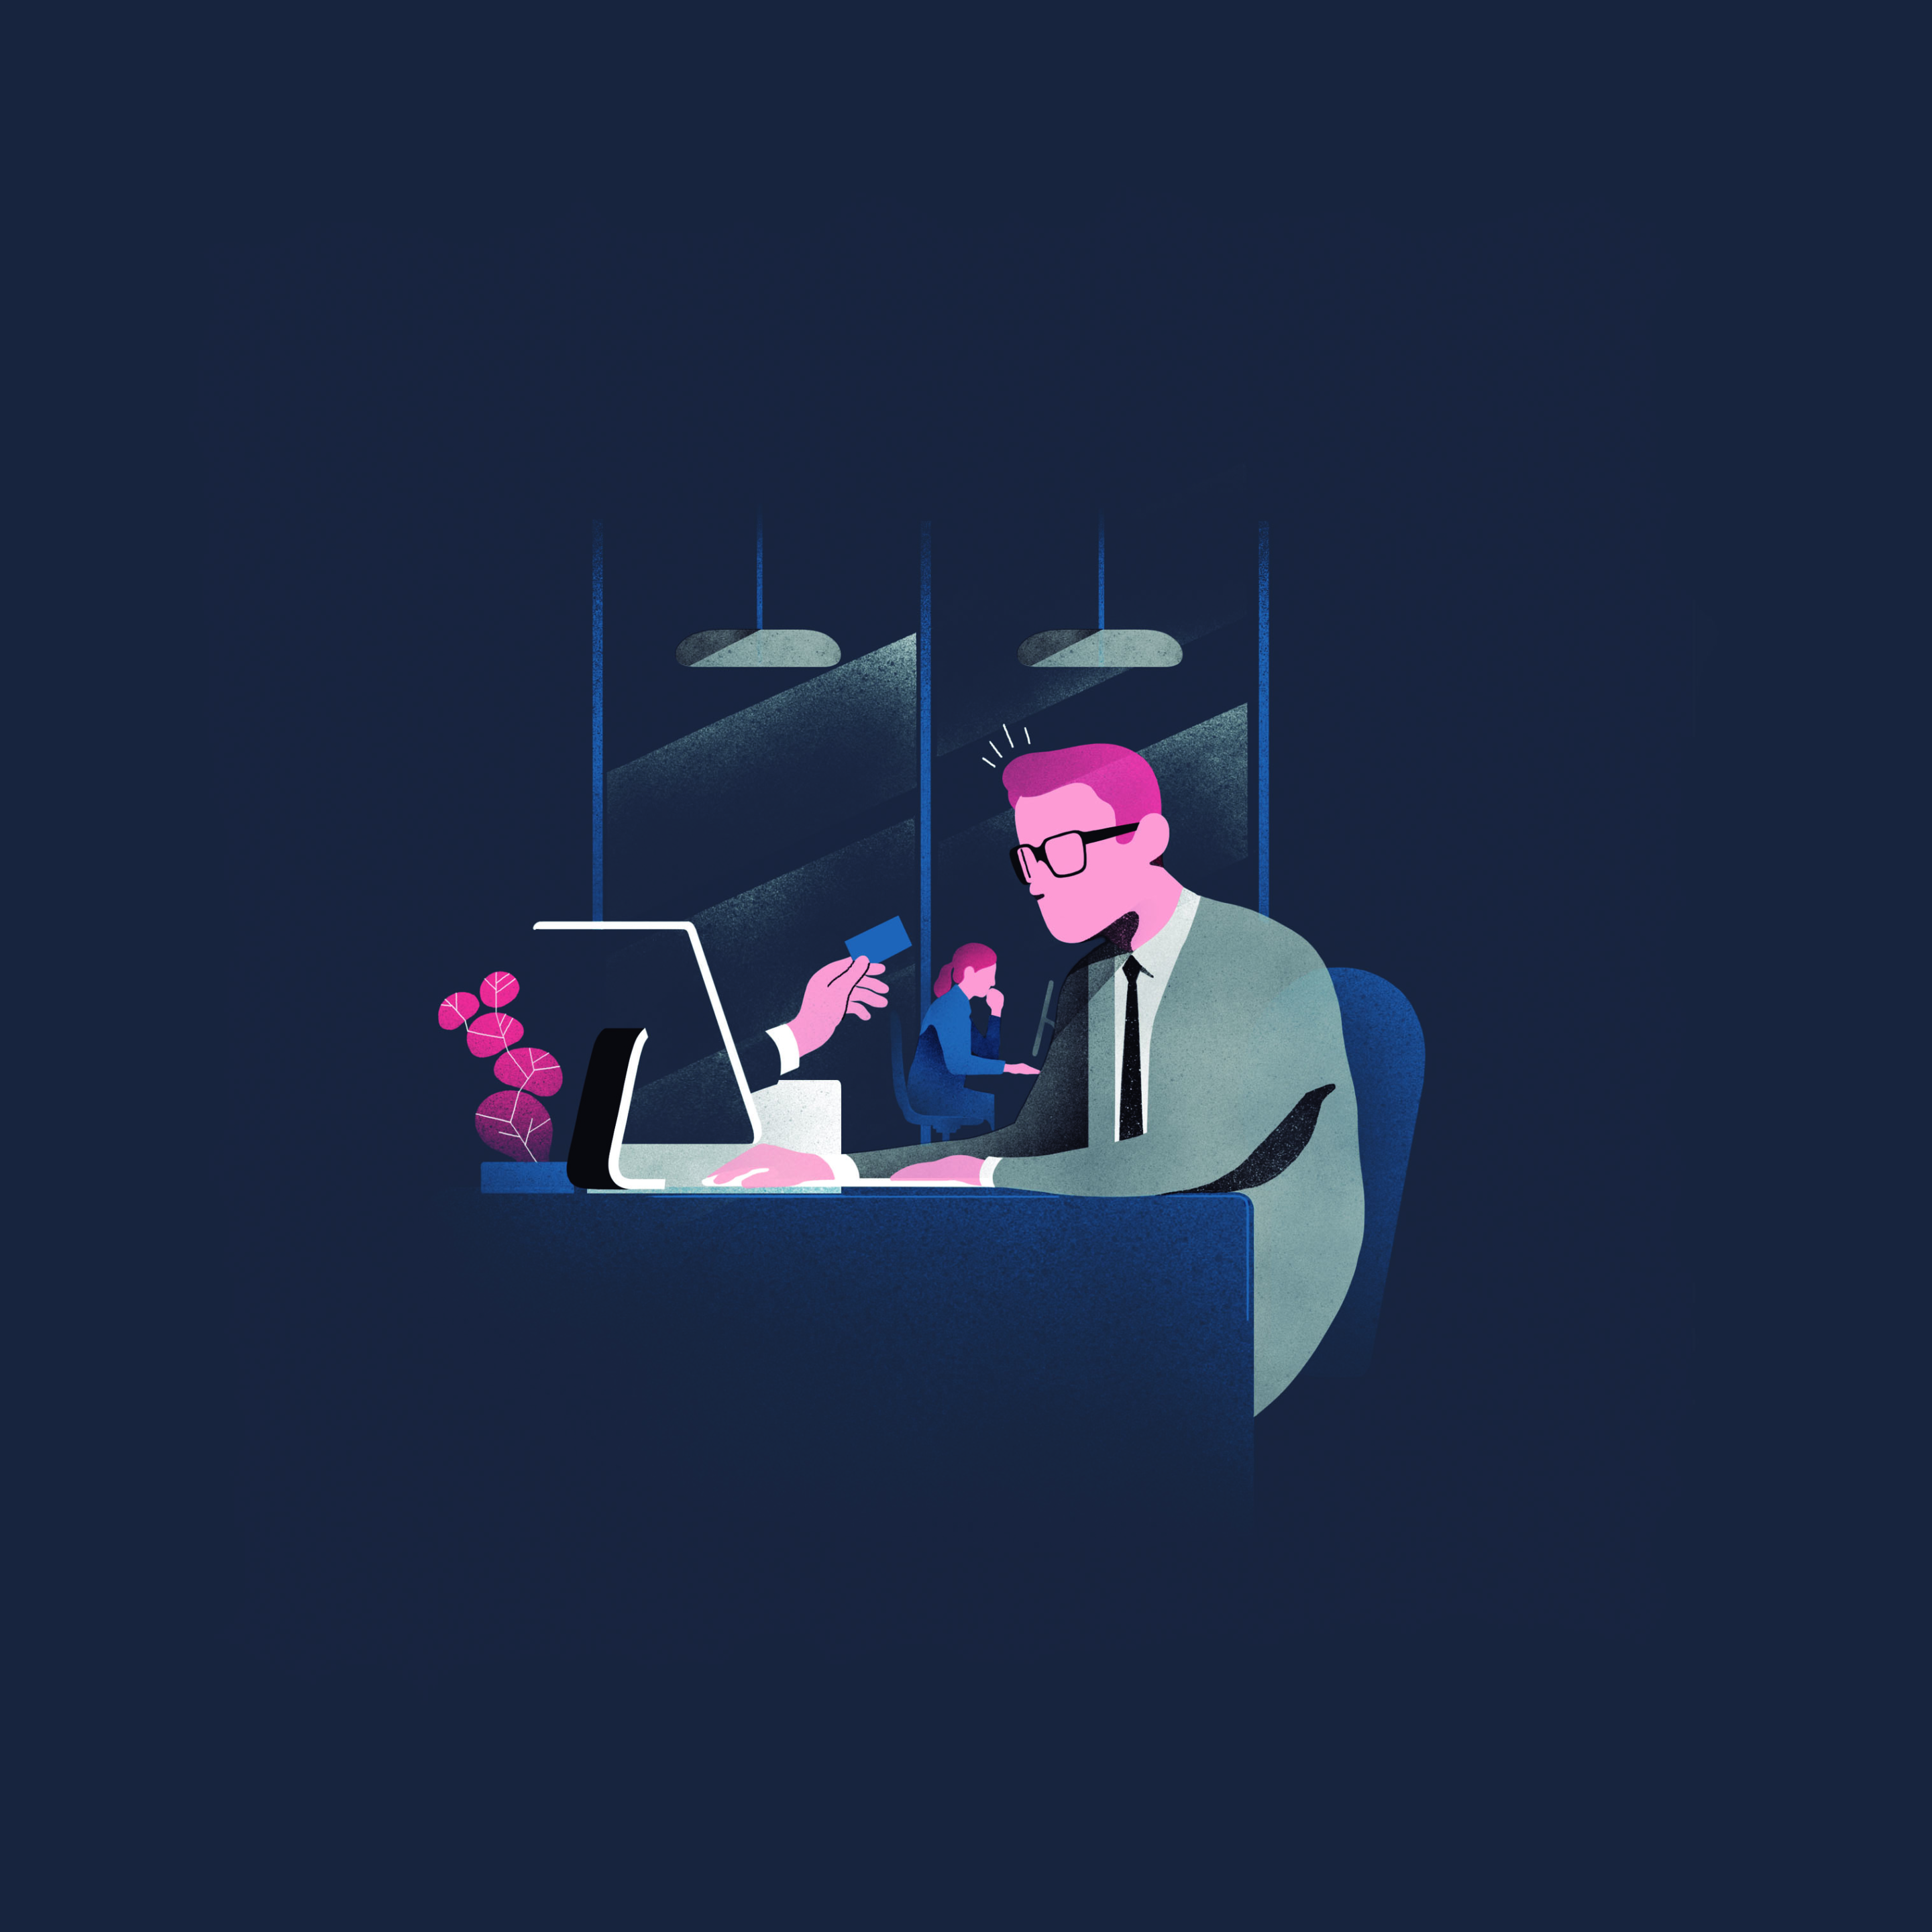 Lufthansa illustrations 2